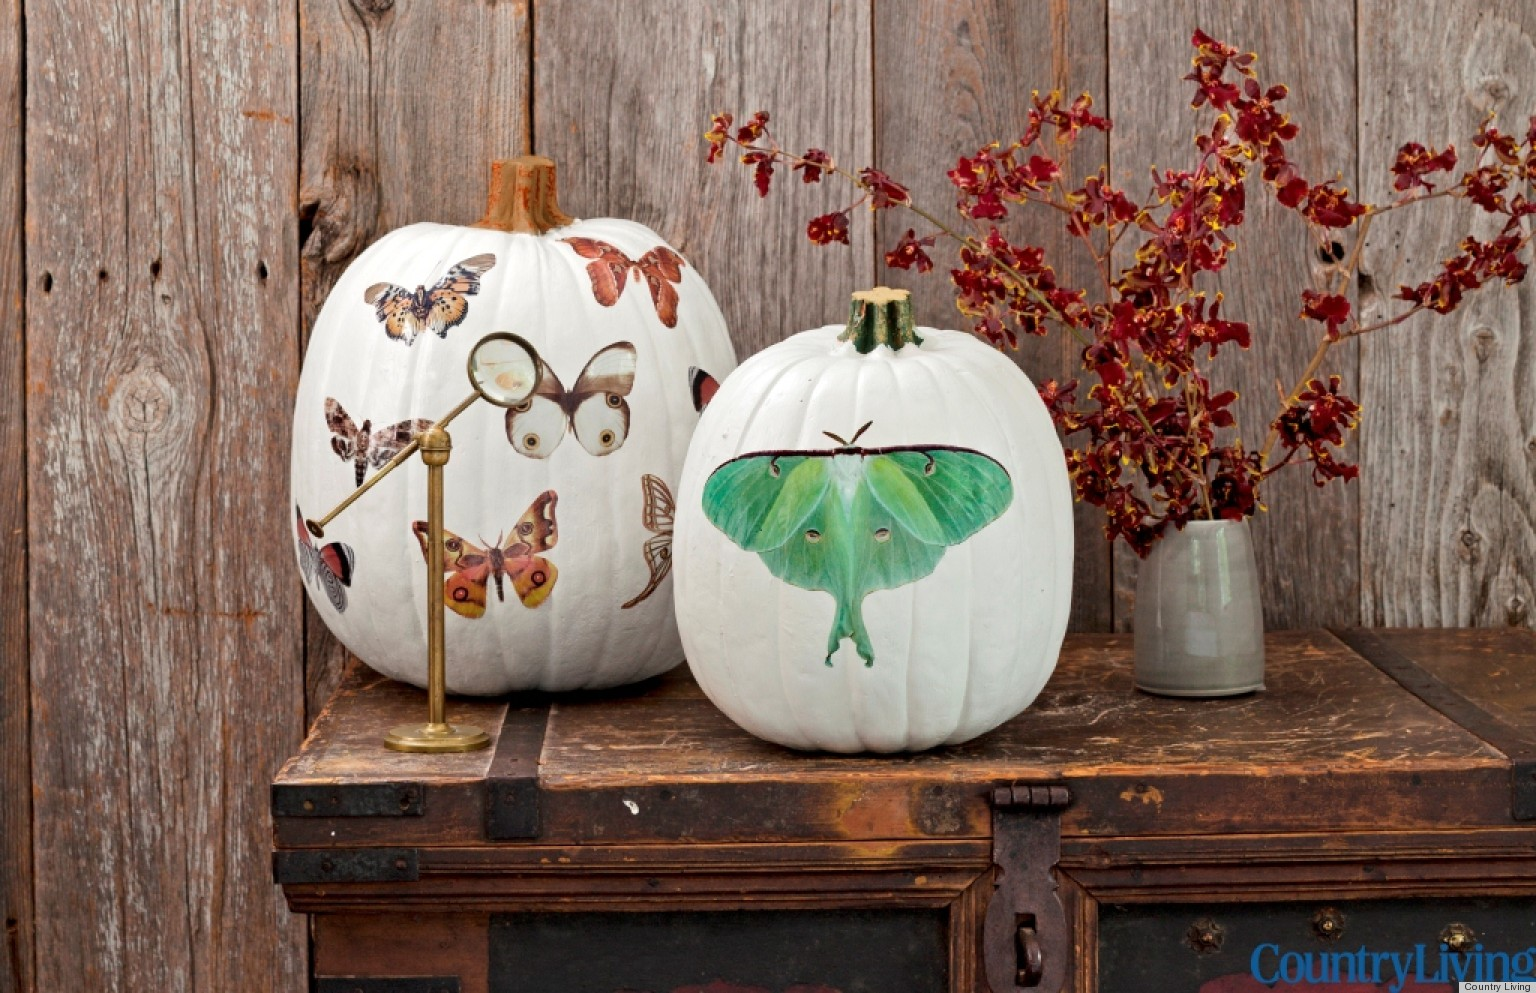 halloween decorations moth decal pumpkins from country living huffpost - Diy Scary Halloween Decorations